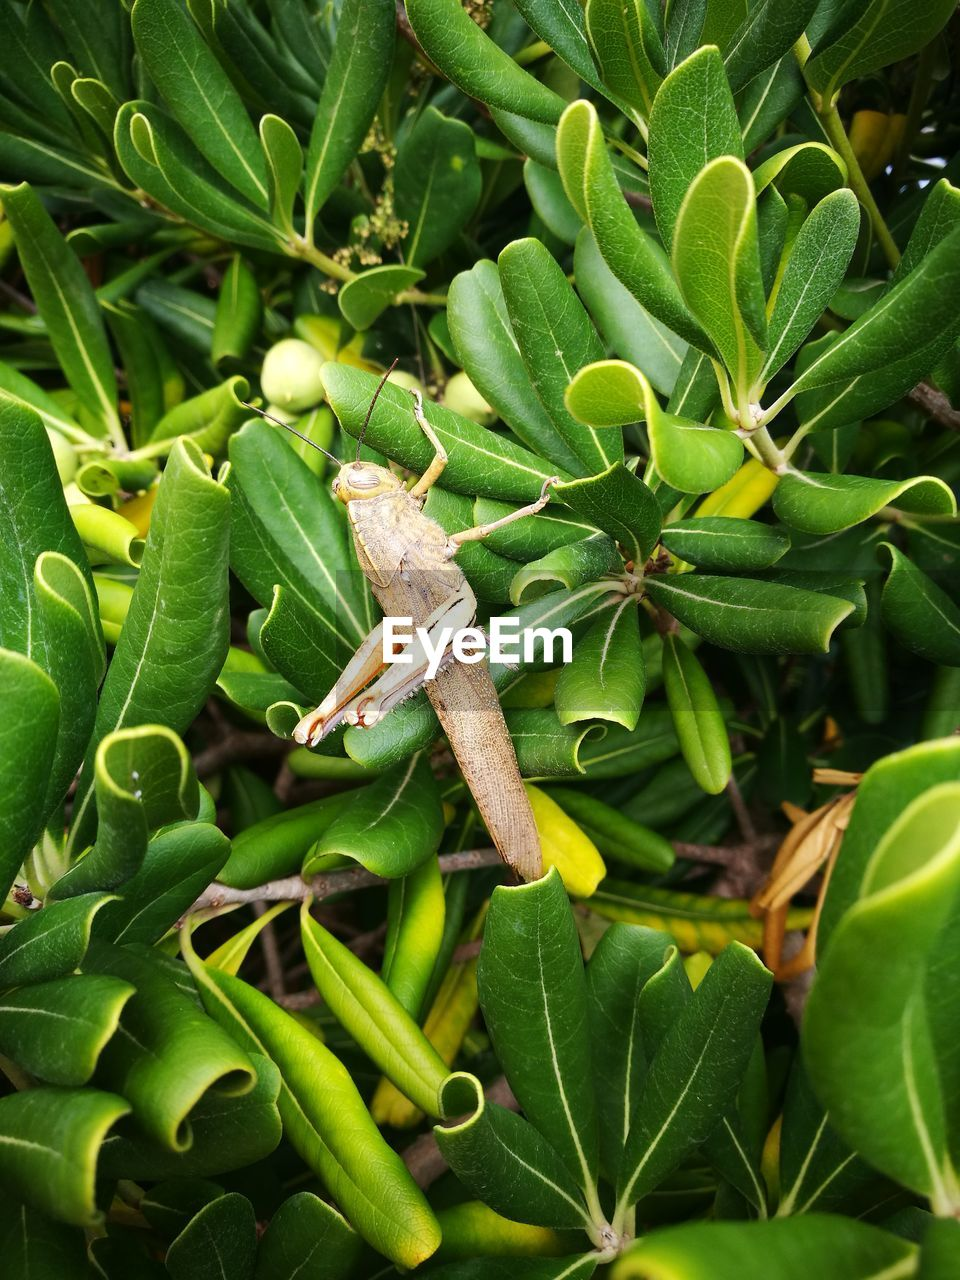 green color, leaf, plant part, plant, growth, close-up, animals in the wild, animal wildlife, nature, day, animal themes, no people, animal, one animal, beauty in nature, insect, invertebrate, outdoors, focus on foreground, high angle view